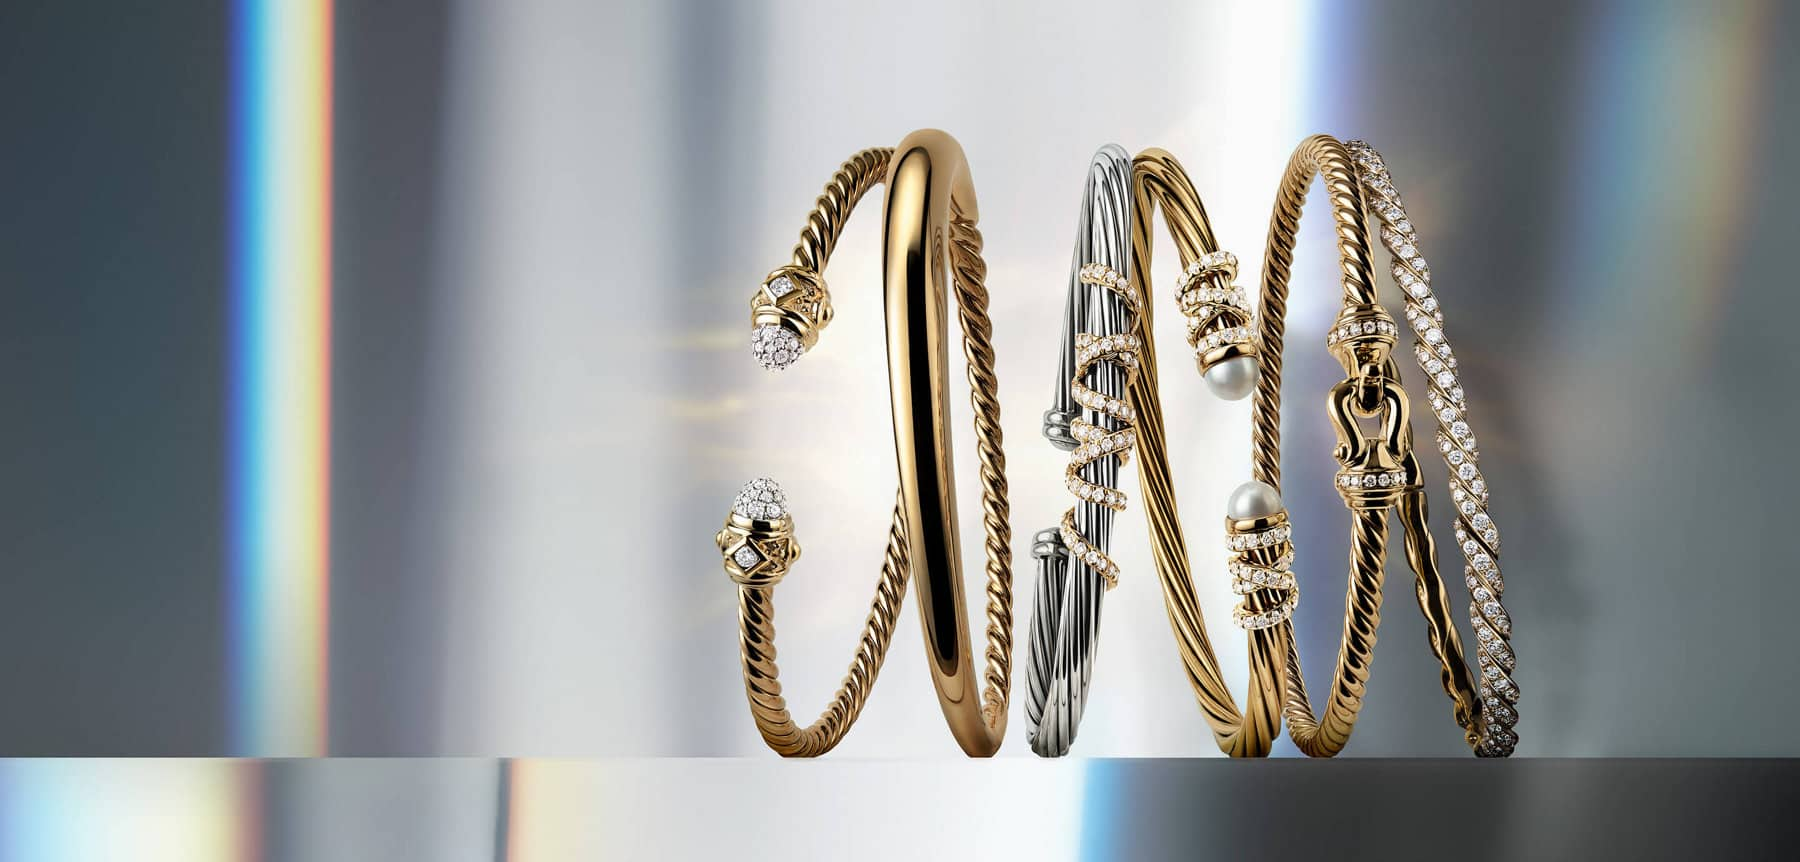 A color photo shows reflections of rainbow-hued light on a vertical stack of three David Yurman Modern Renaissance pyramid cuff bracelets in sterling silver, 18K yellow gold, and black titanium and 18K yellow gold.